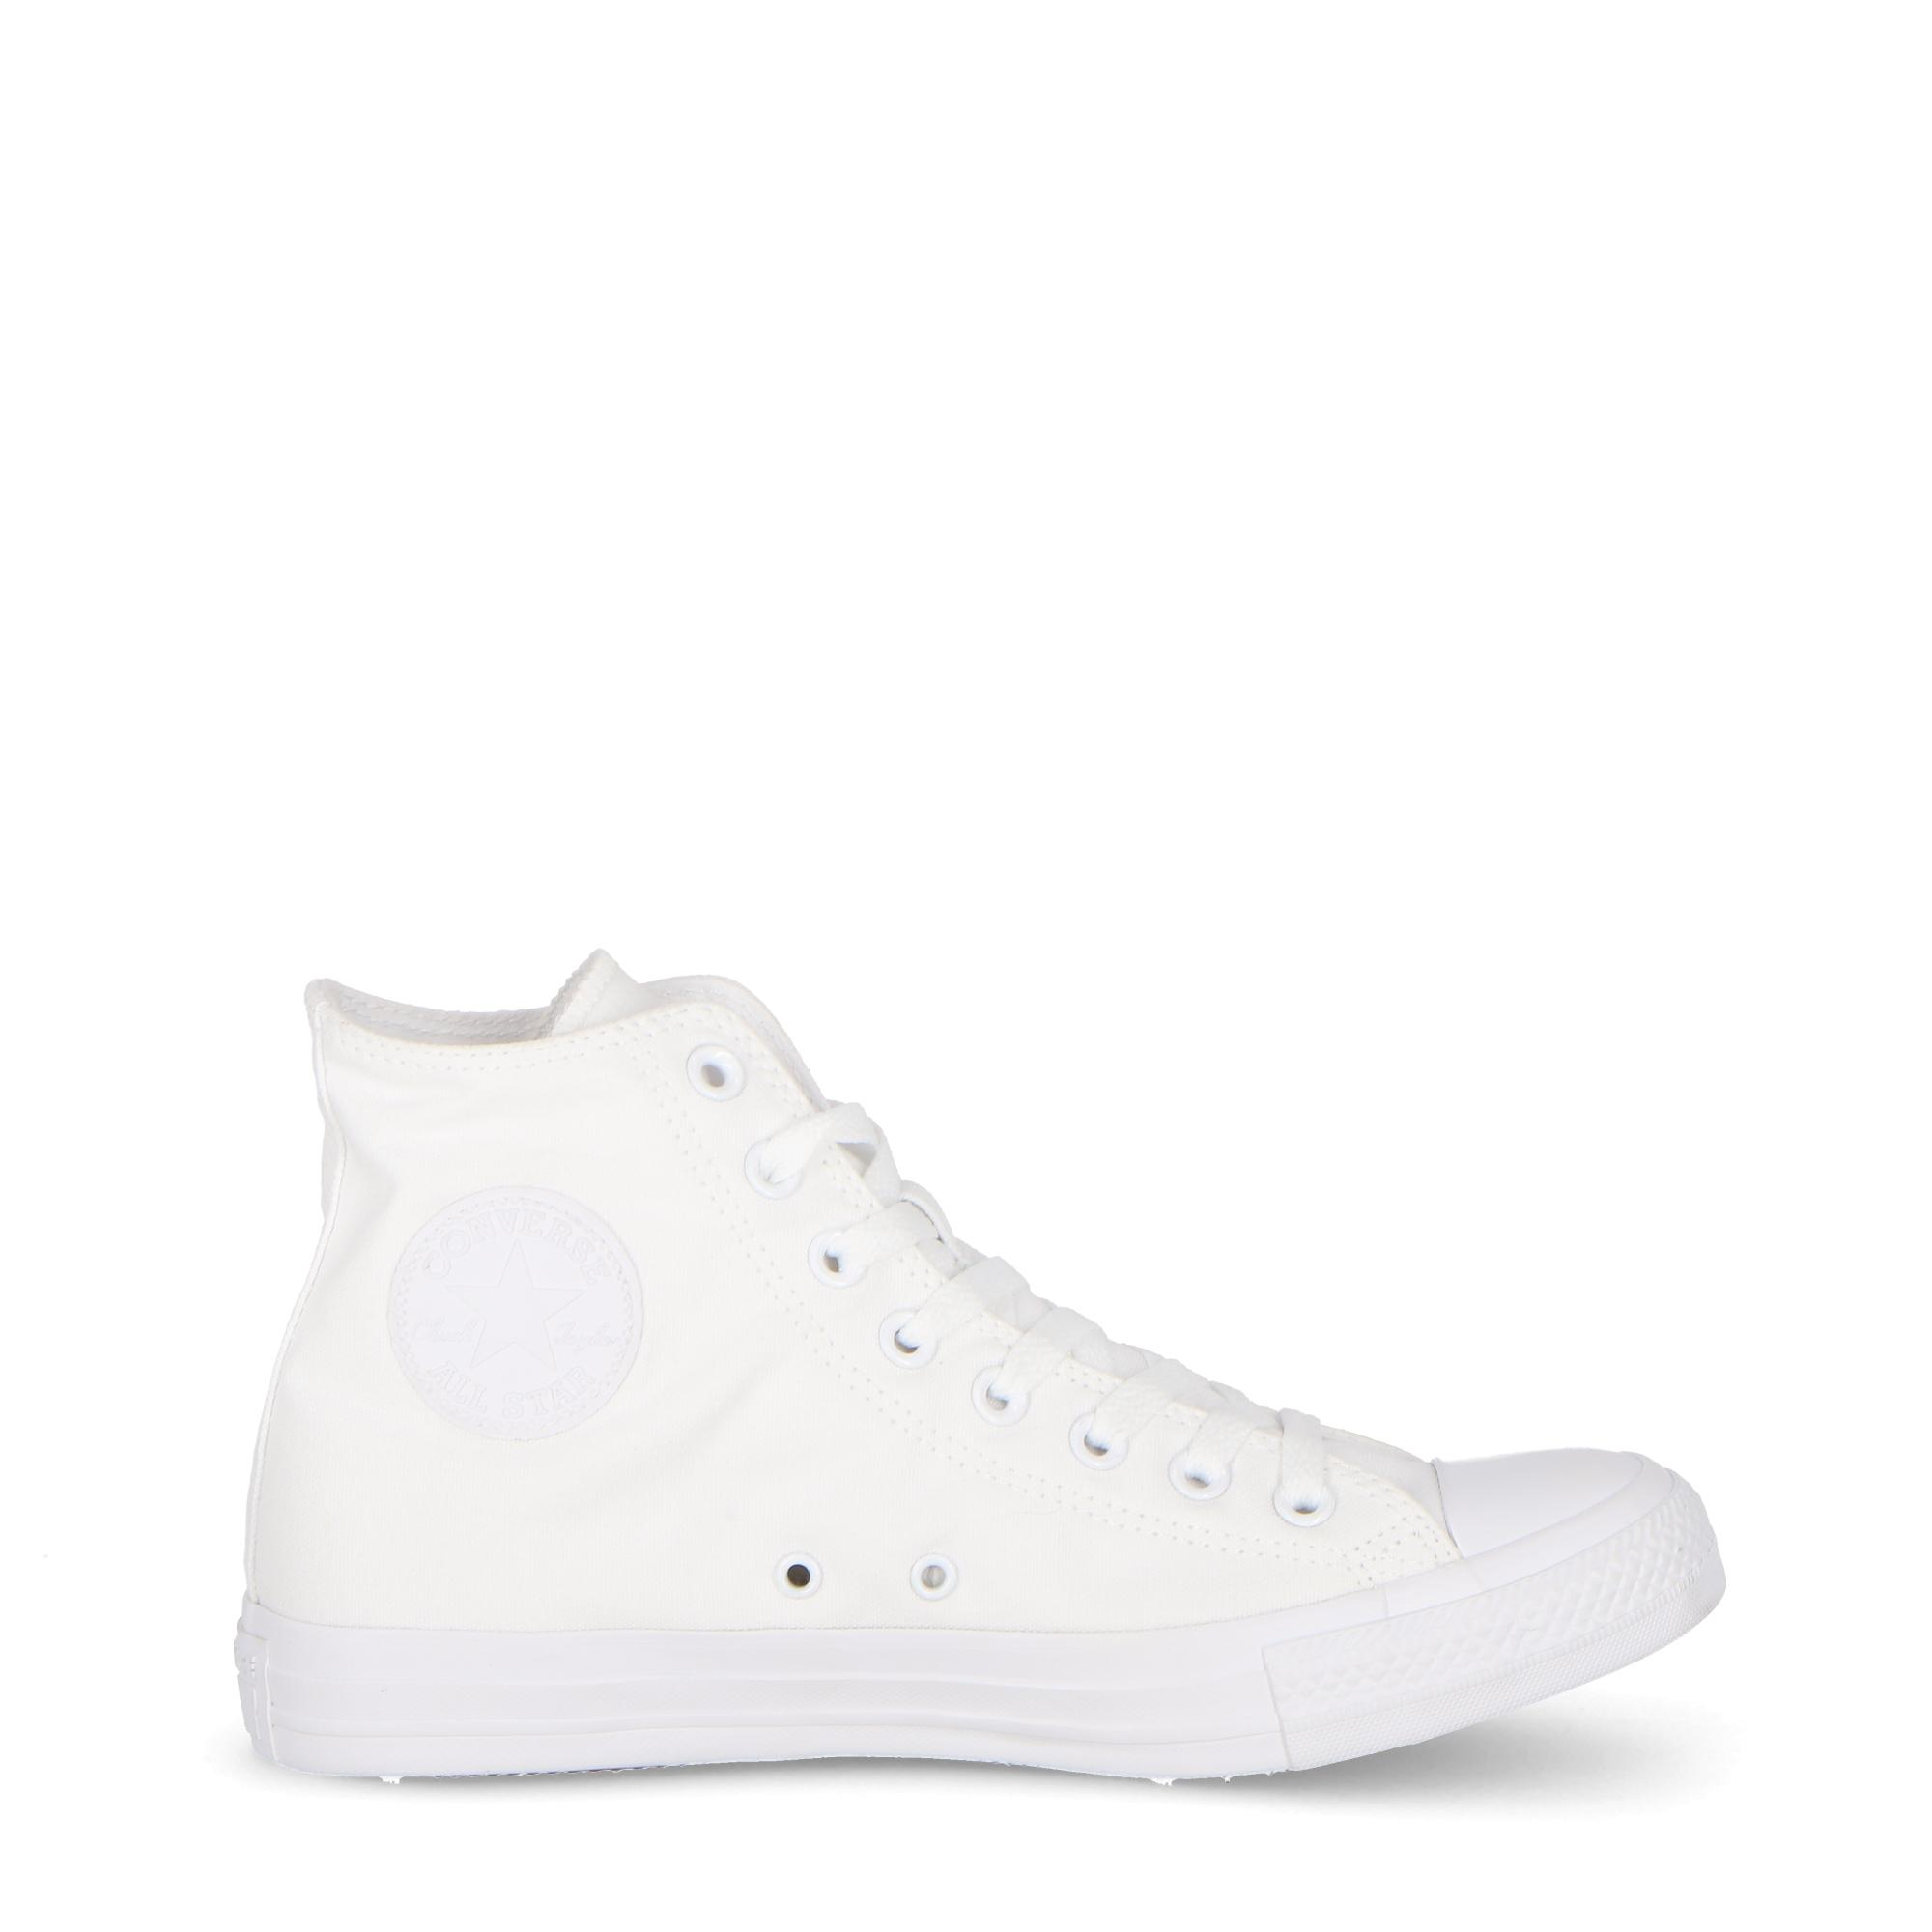 Converse Chuck Taylor All Star  Seasonal Hi White monochrome